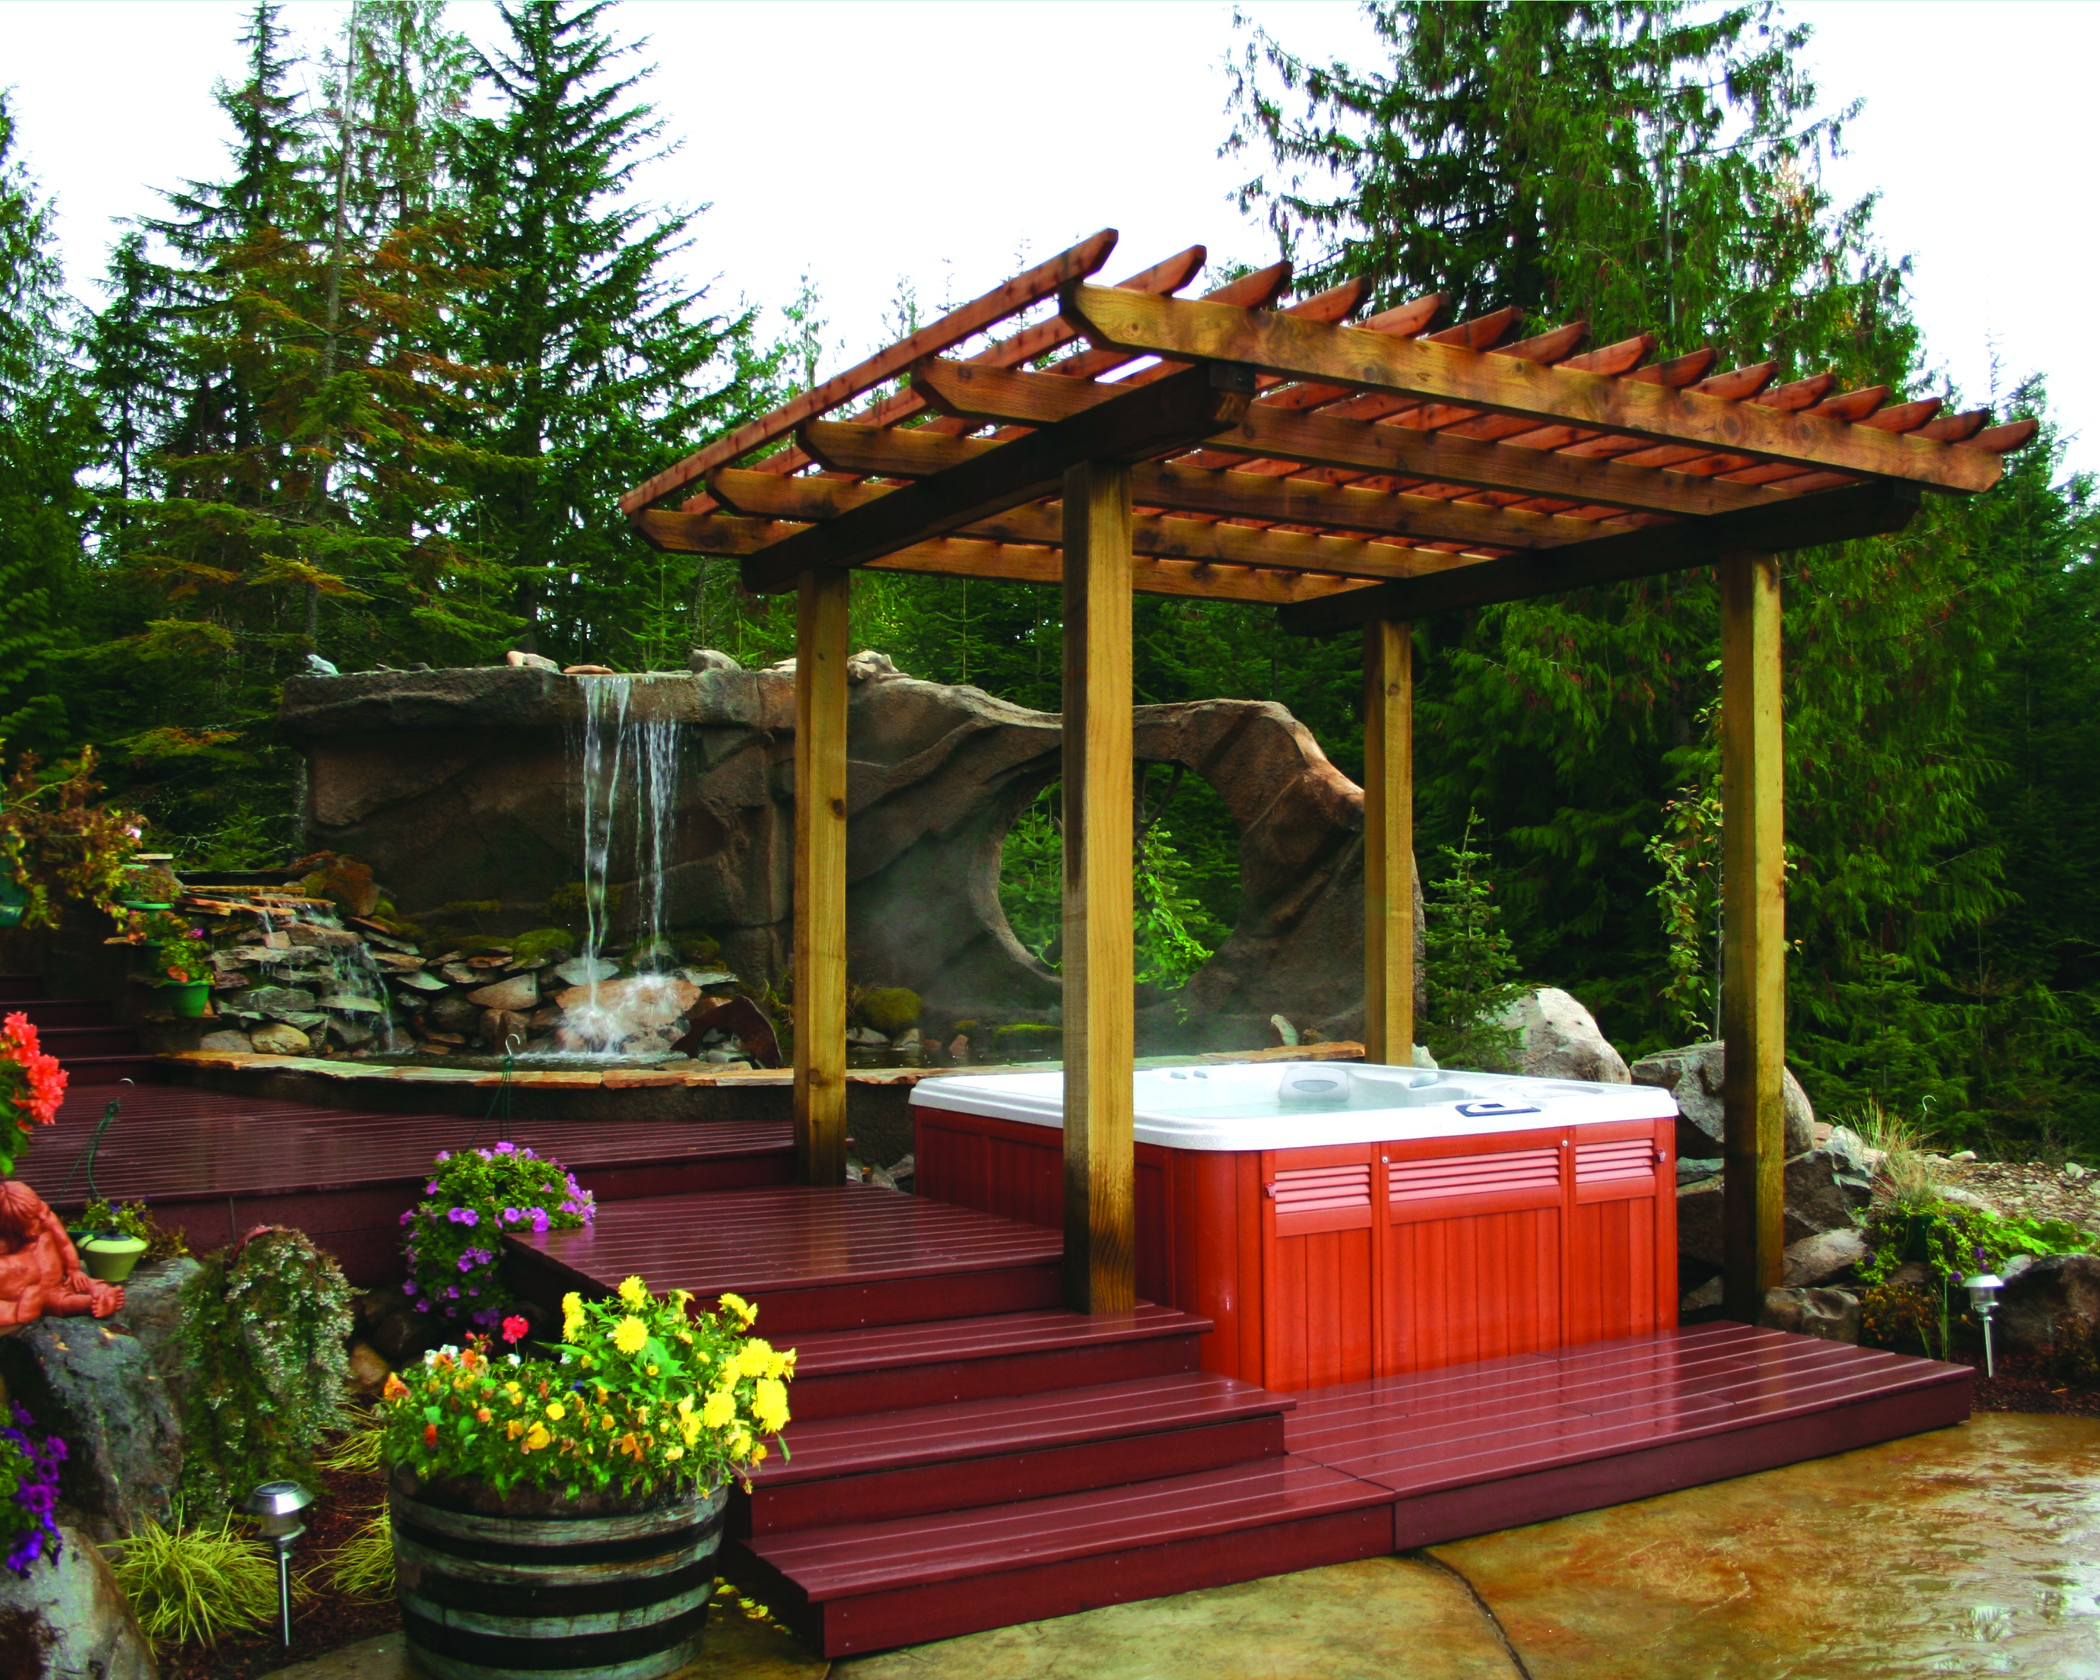 Beautiful outdoor living space with a hot tub.